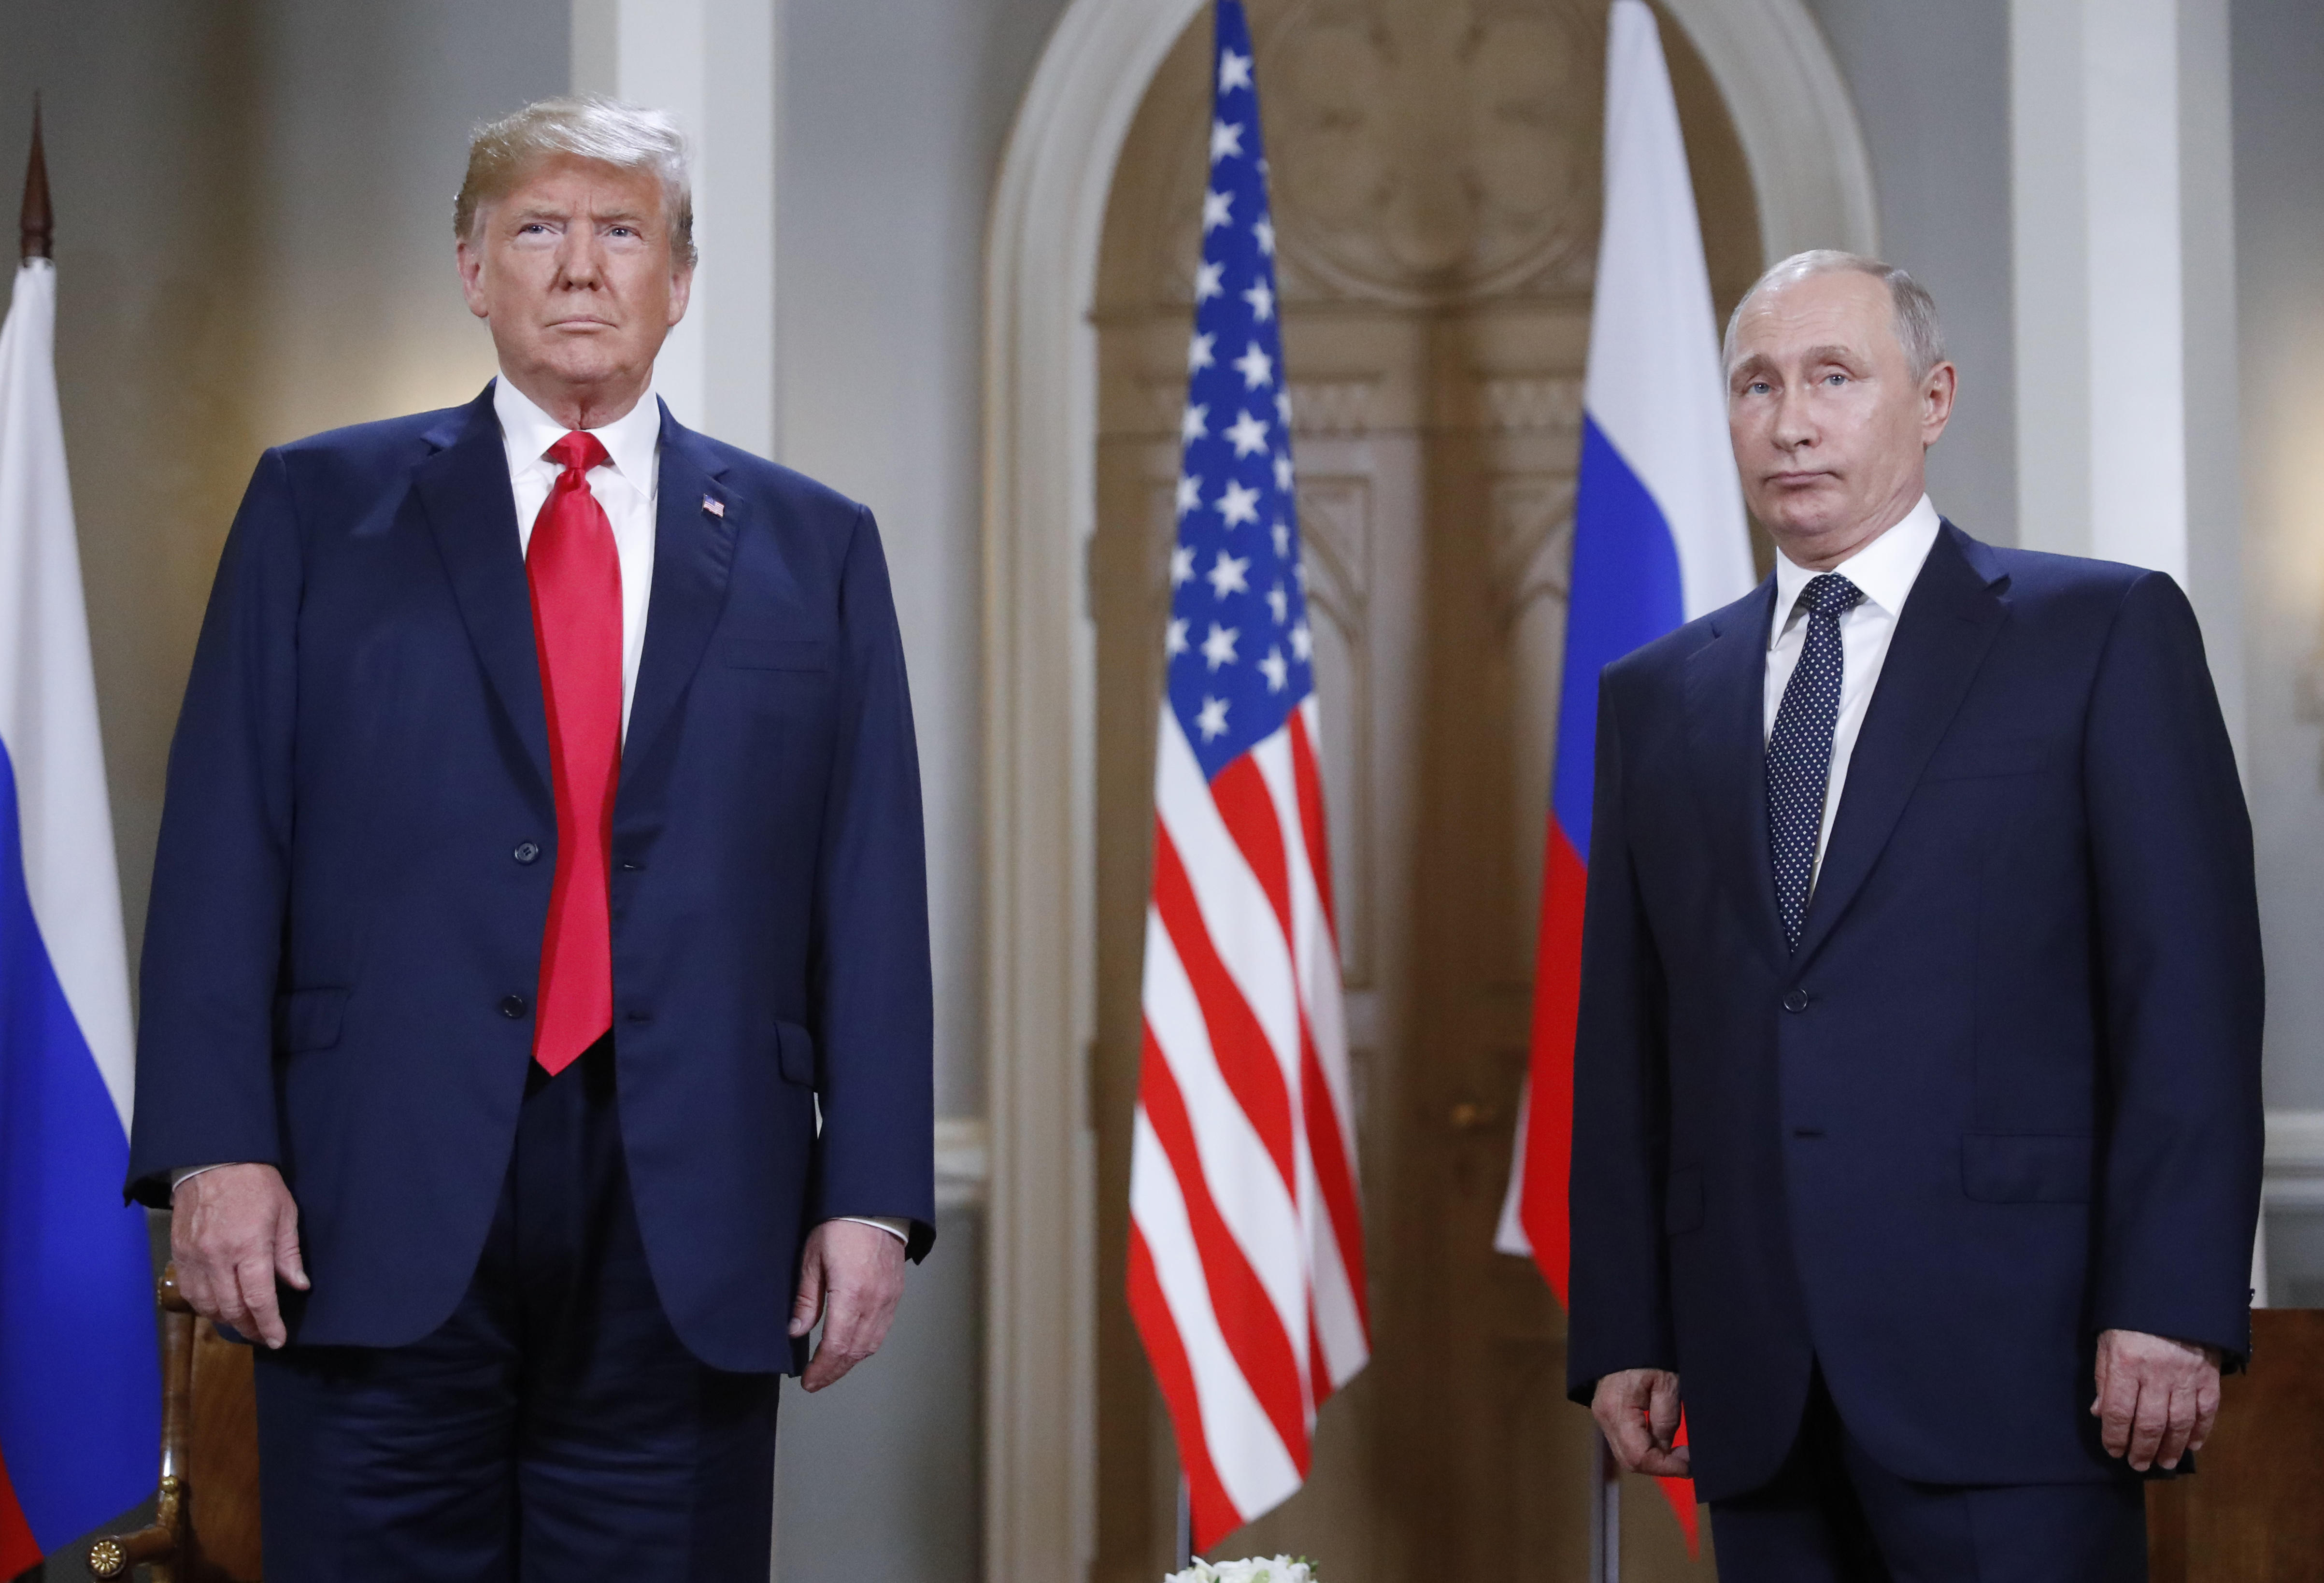 Russia Says Donald Trump Vladimir Putin Meeting At G 20 In Argentina Still On After Kerch Strait Aggression With Ukraine Cbs News